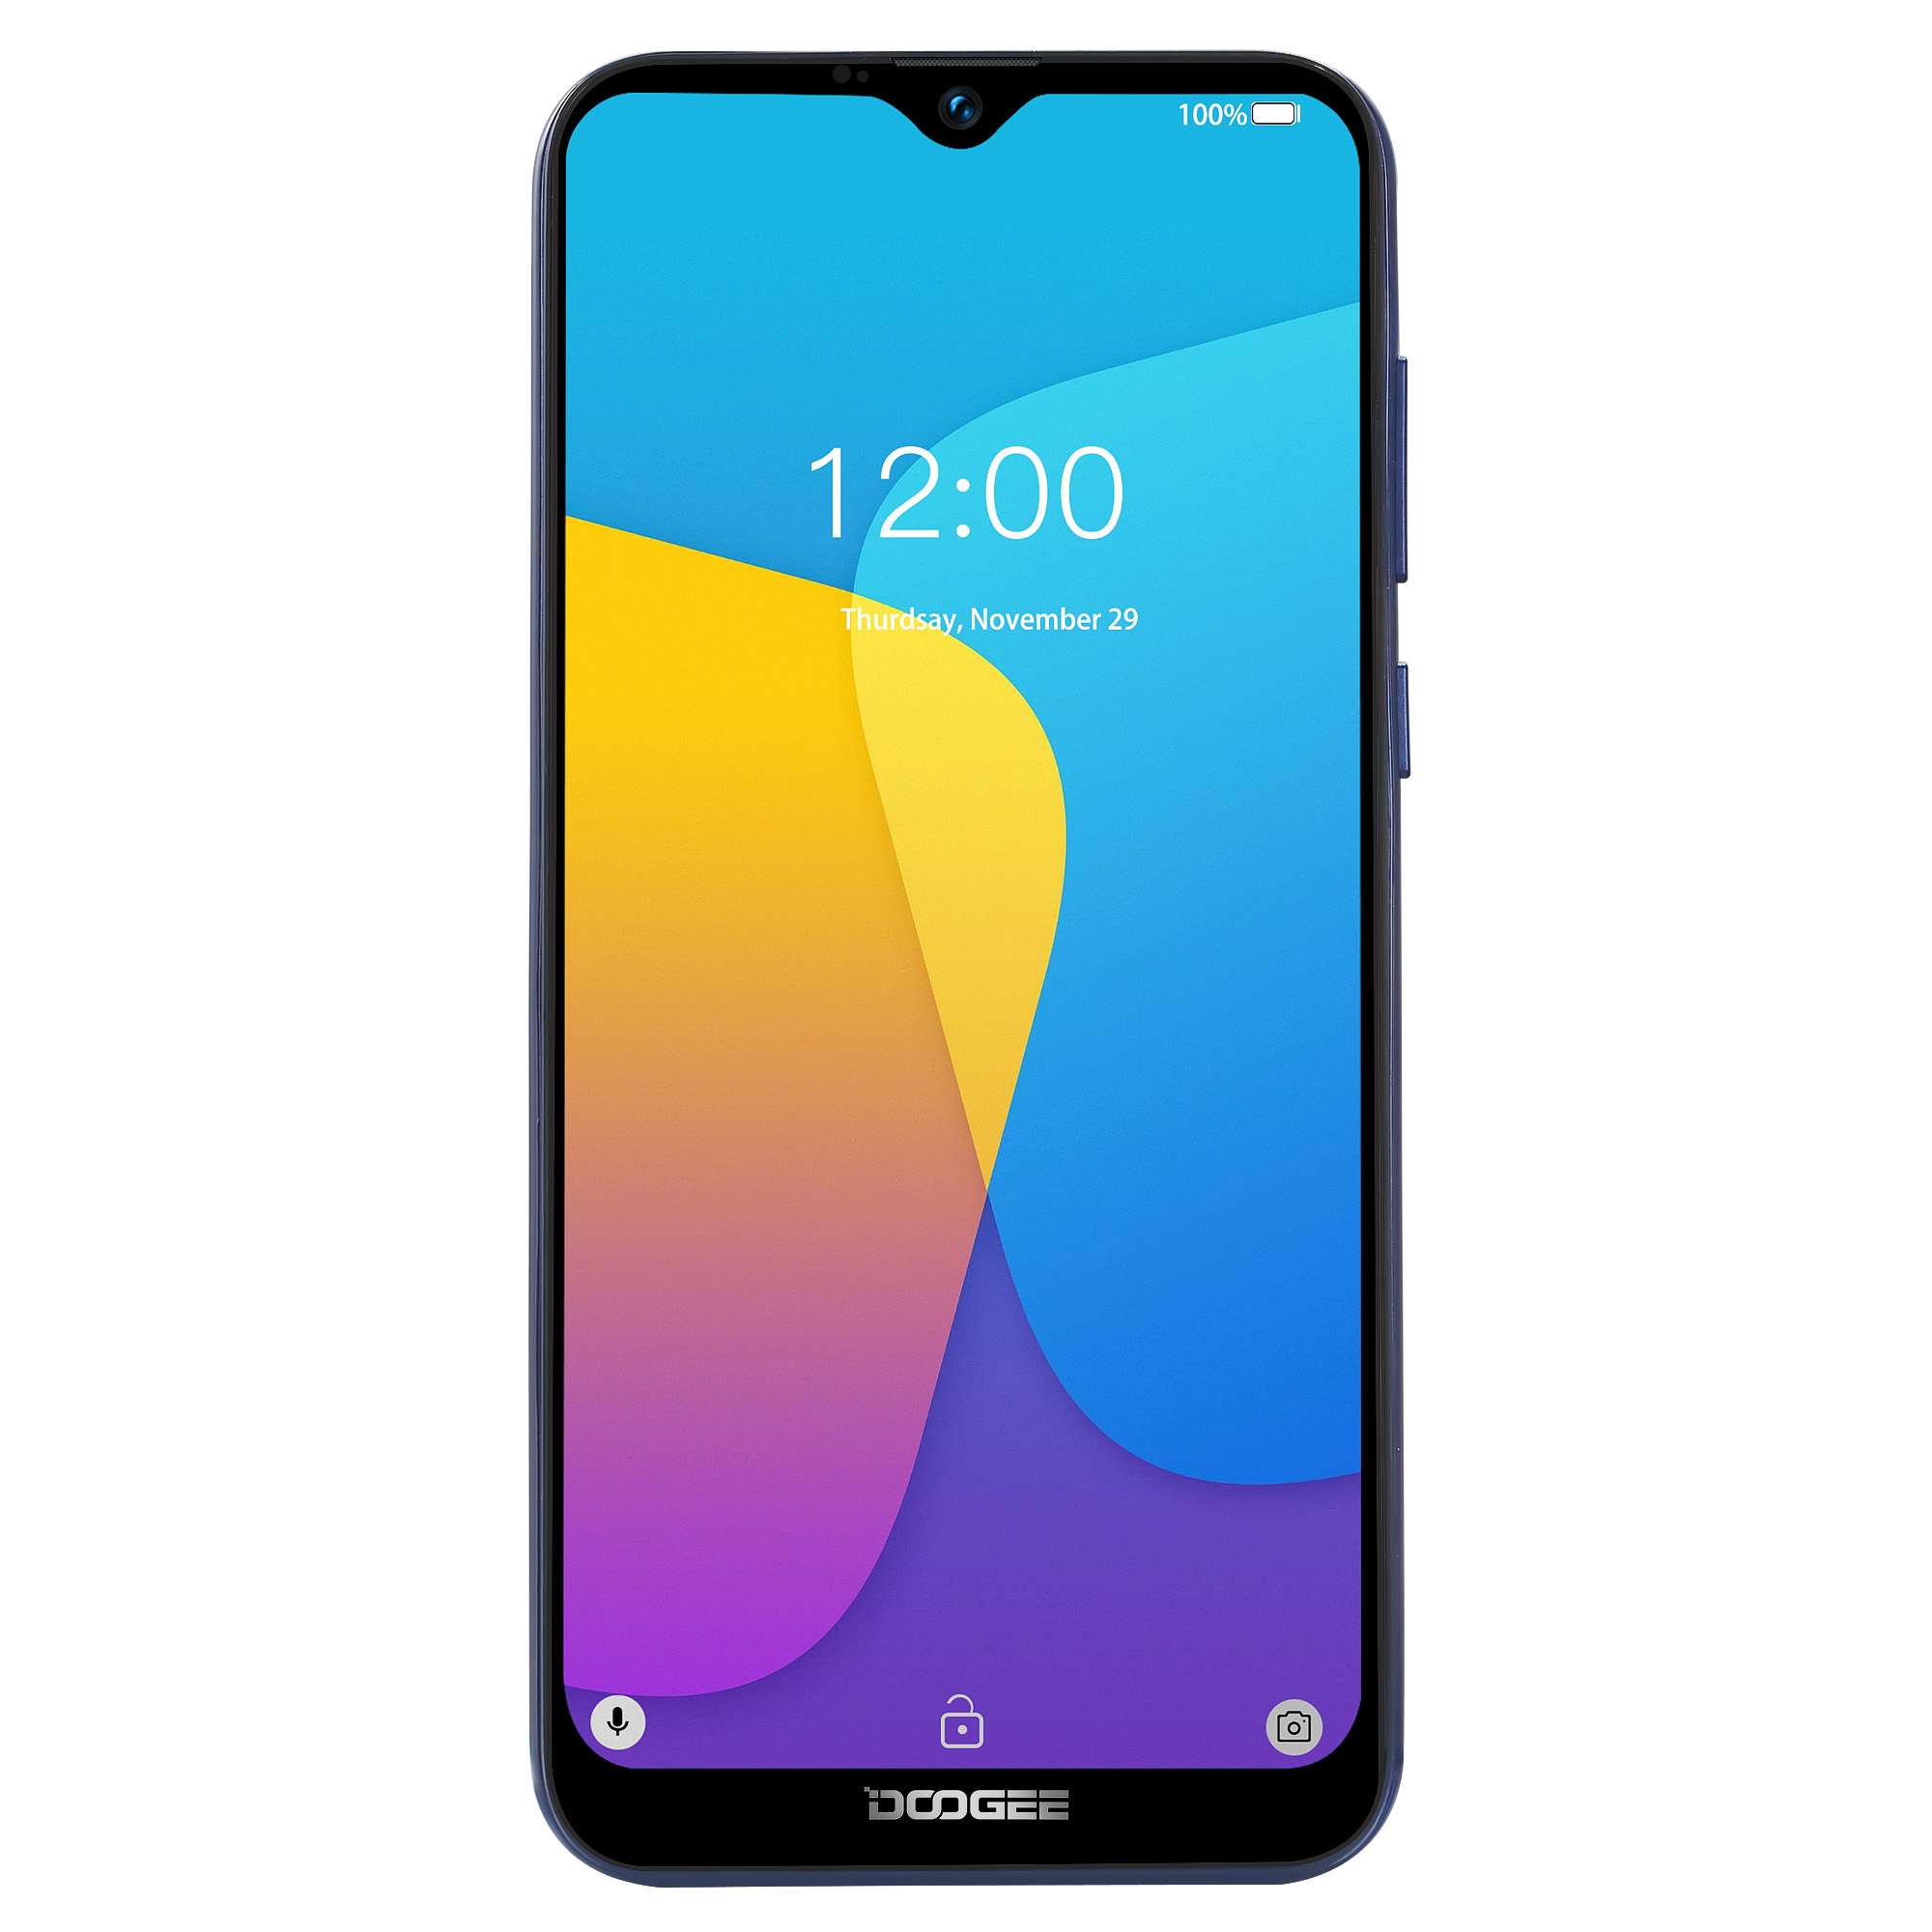 DOOGEE X90 Cellphone 6.1inch 19:9 Waterdrop LTPS Screen Smartphone Quad Core CPU 1GB RAM+16GB ROM 3400mAh Battery Dual SIM Cards 8MP+5MP Camera Android 8.1 OS  Blue_Russian version